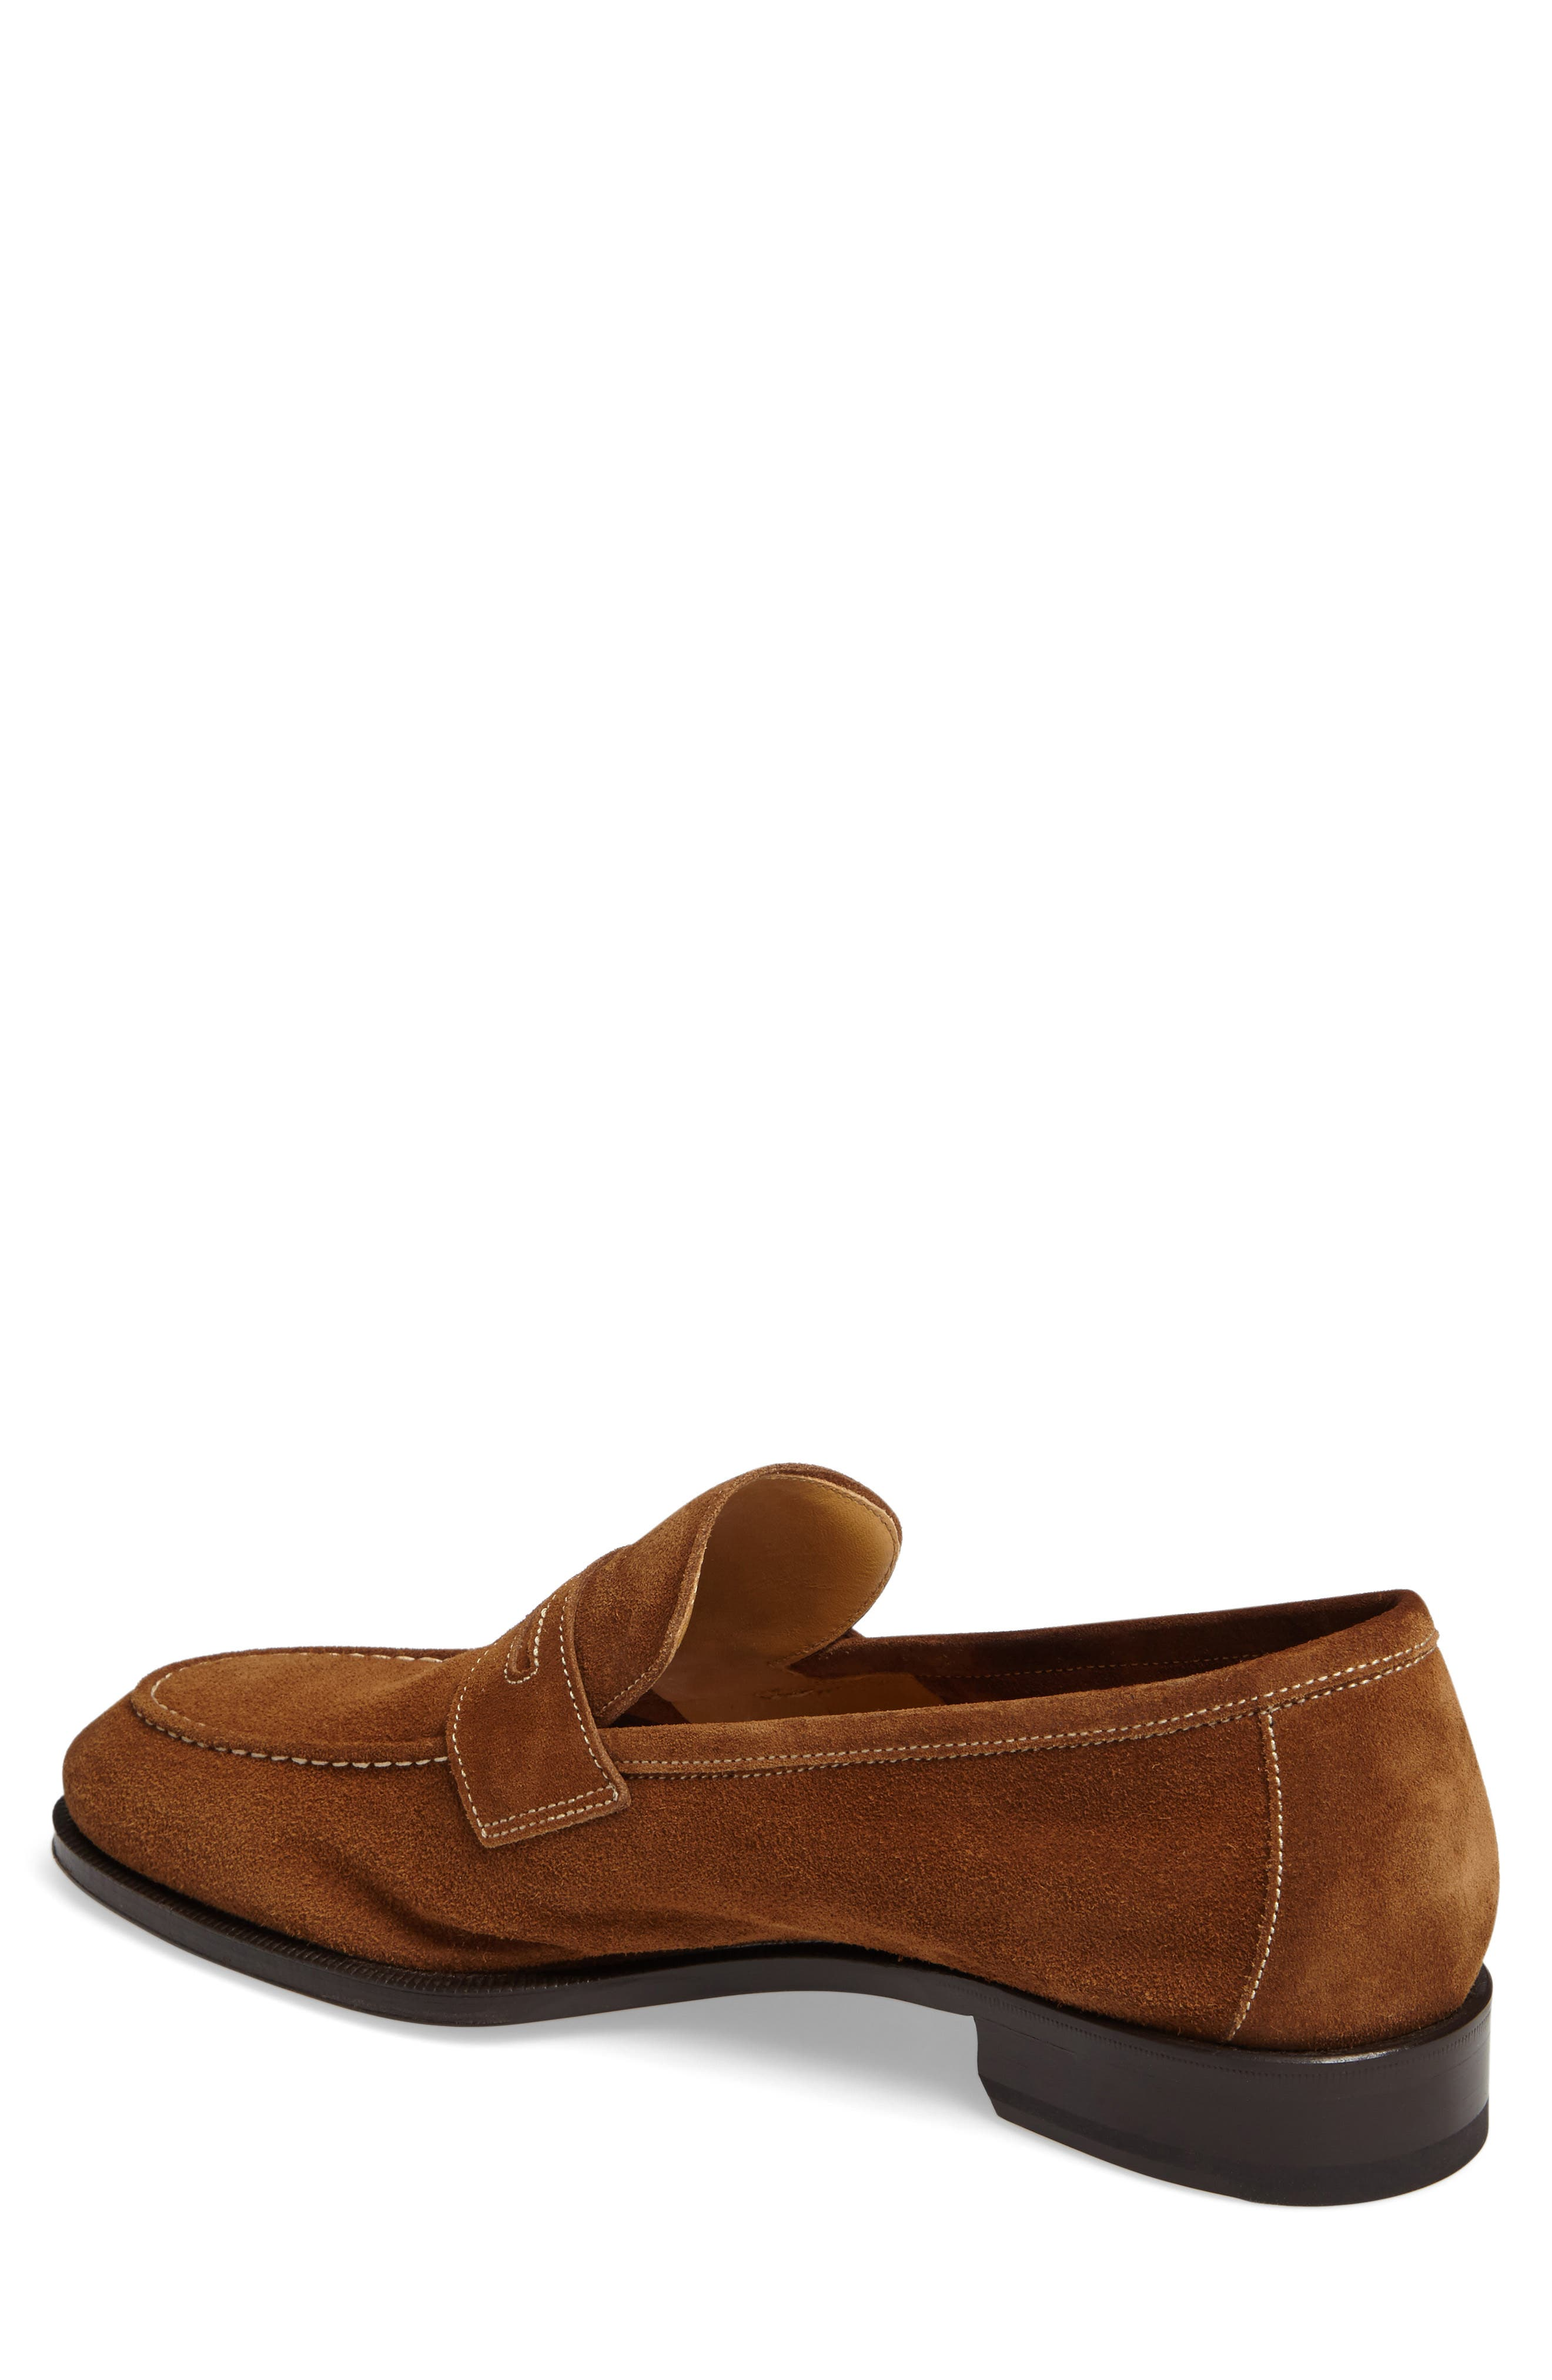 Leather Penny Loafer,                             Alternate thumbnail 7, color,